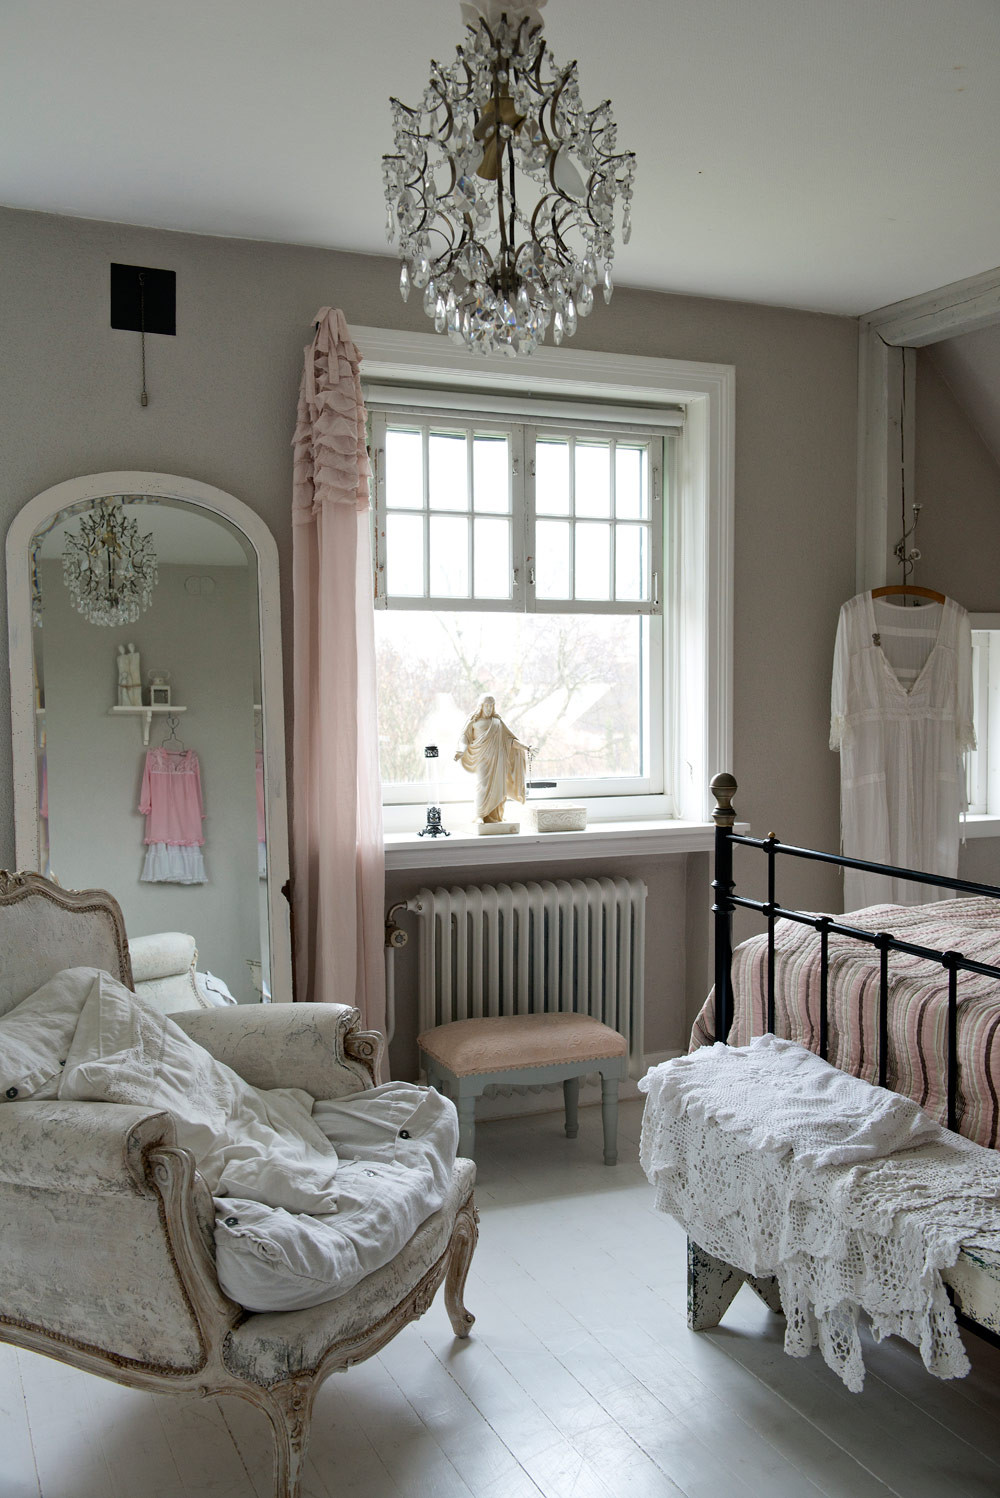 Best ideas about Shabby Chic Room . Save or Pin Gin Design Room Shabby Chic Inspiration Now.